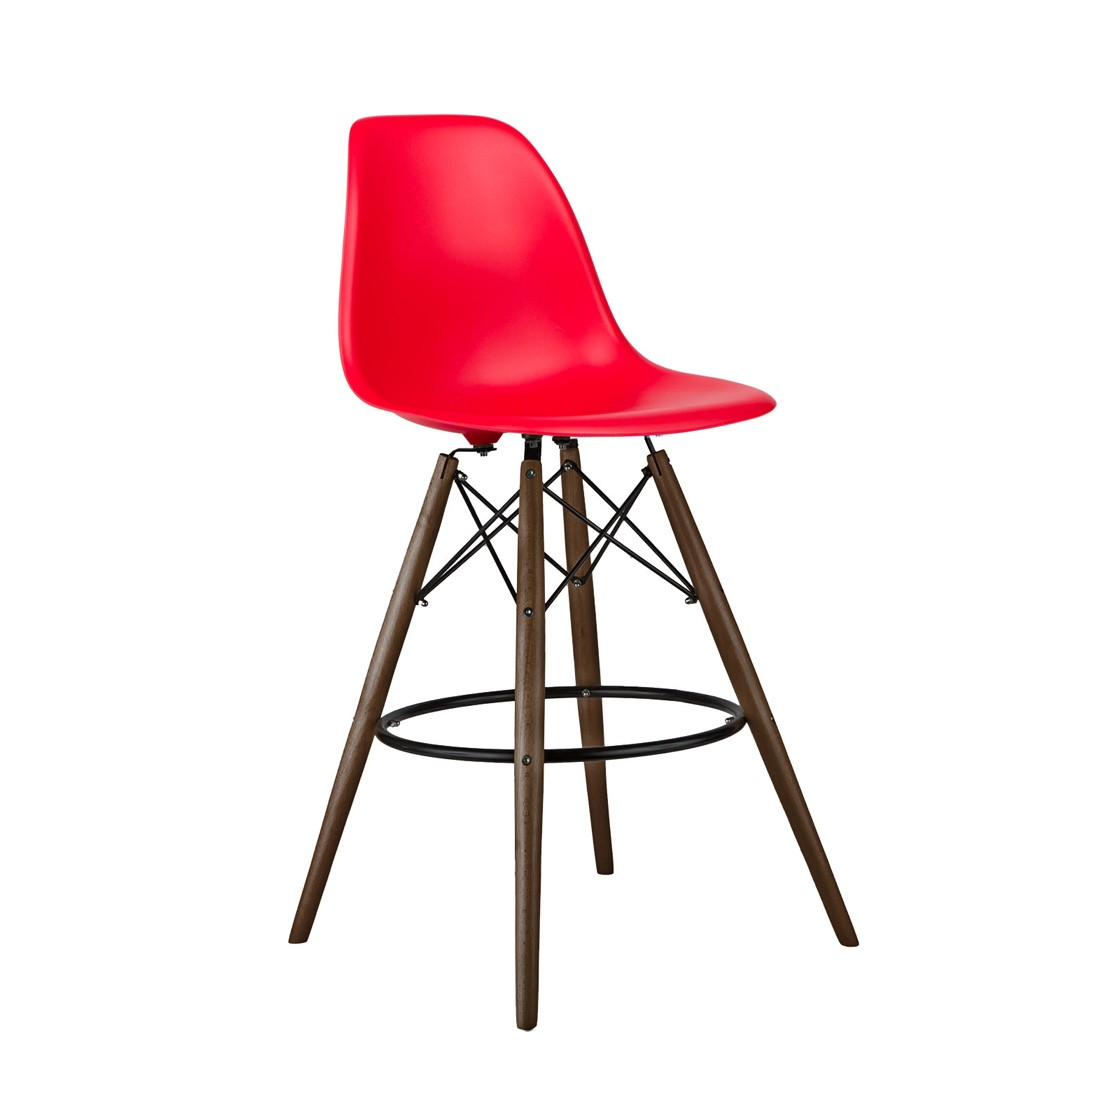 Set of 2 Red Eames Style DSW 26 Inch Counter Stool with  : eames stools red walnut leg 65p2 from www.emoderndecor.com size 1120 x 1120 jpeg 73kB